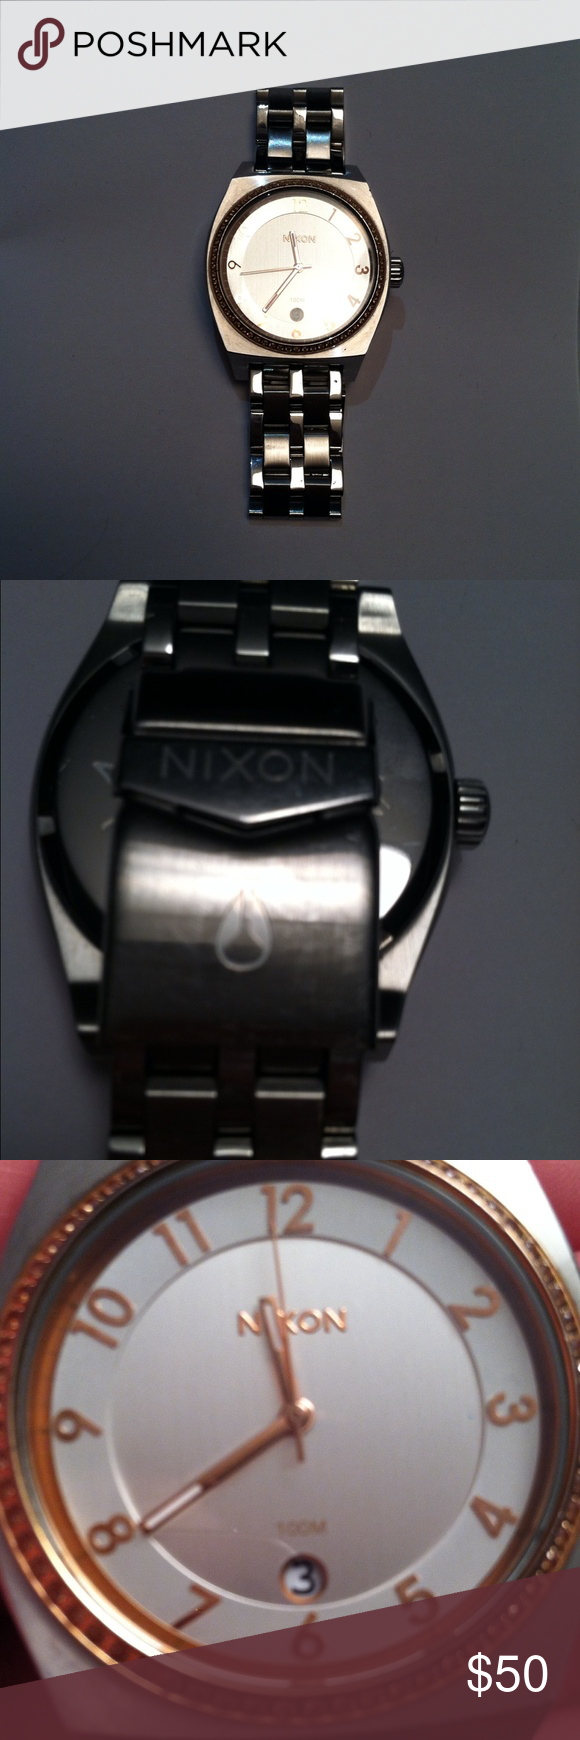 Nixon Molopoly Silver/Rose watch Preloved condition. Retails for $250+. Willing to ship tomorrow! Let me know if you have questions. Nixon Accessories Watches